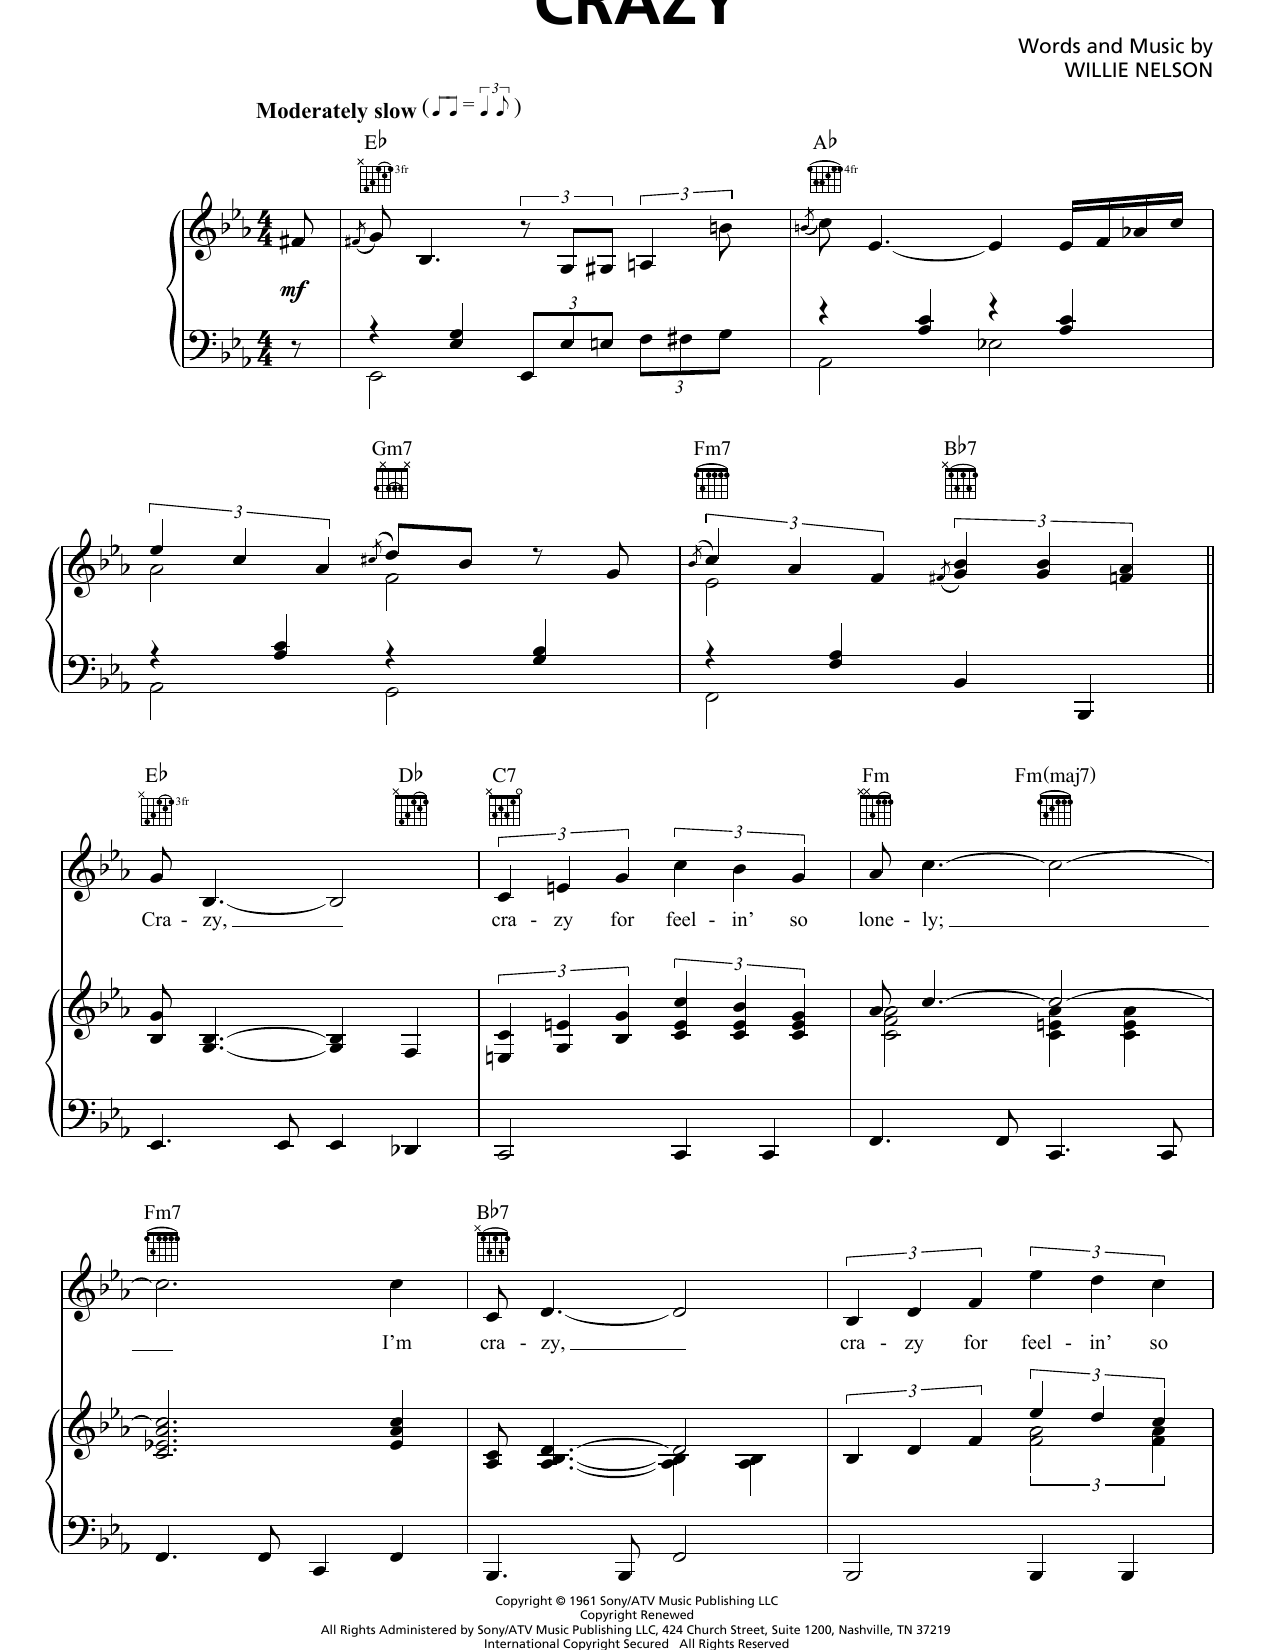 Patsy Cline Crazy sheet music notes and chords. Download Printable PDF.